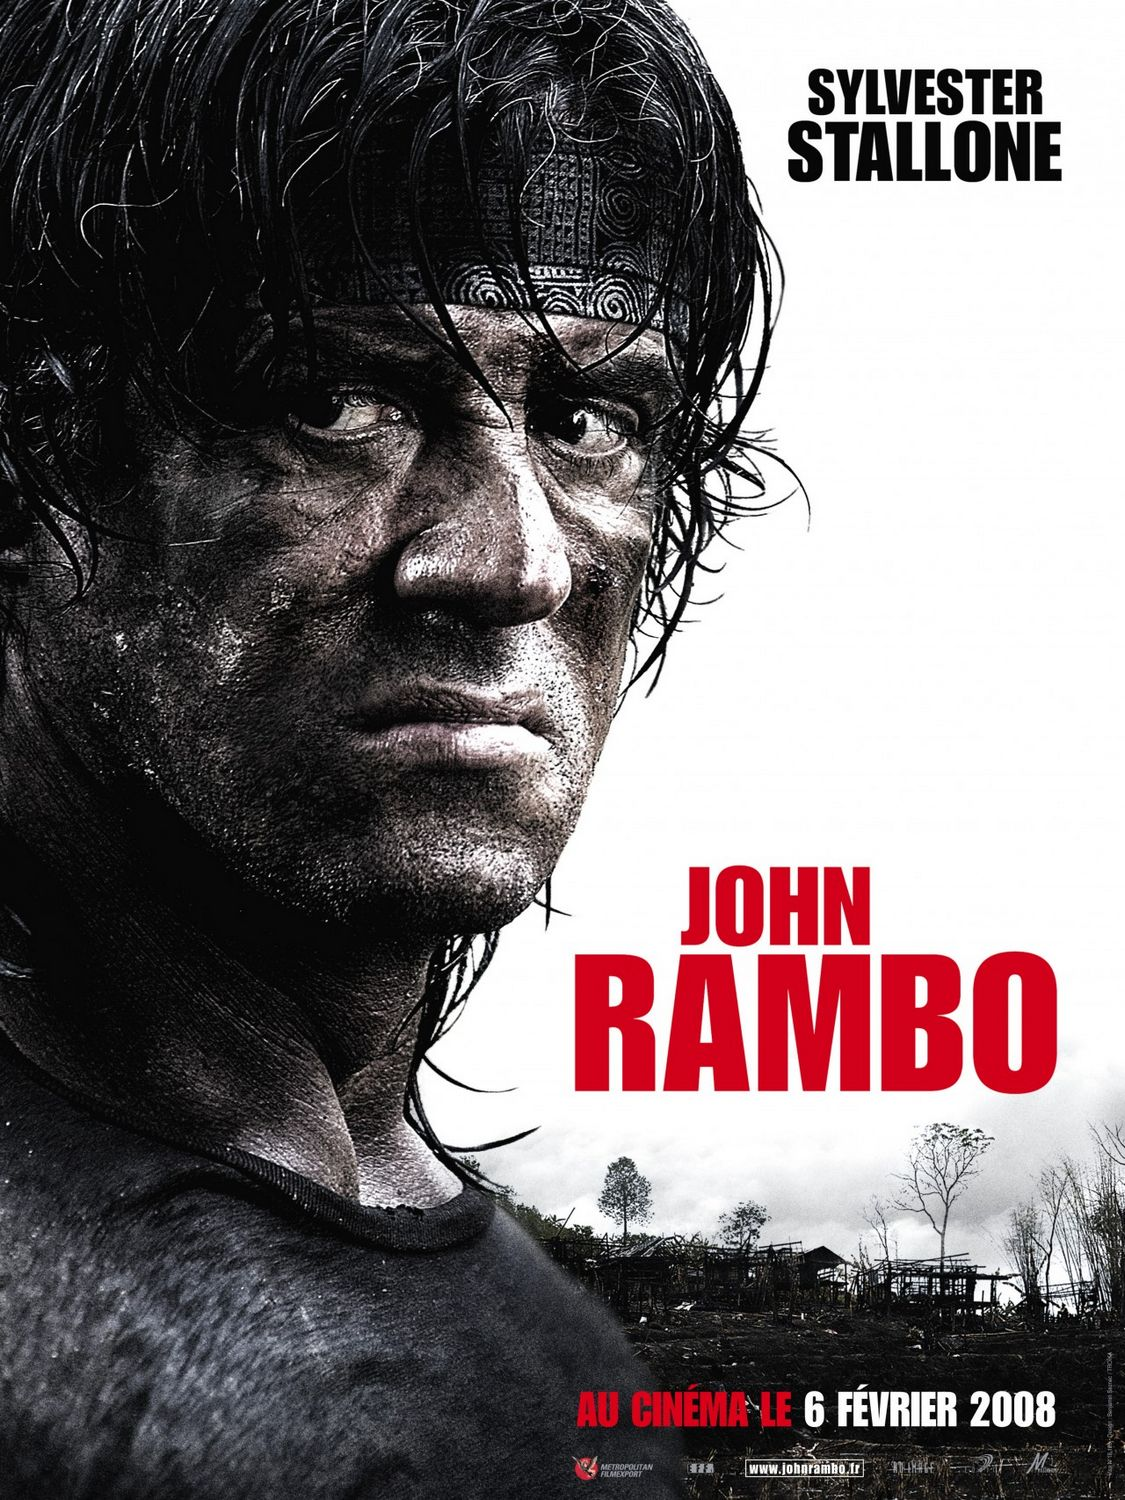 Rambo - Sylvester Stallone and human growth hormone (hGH) and testosterone